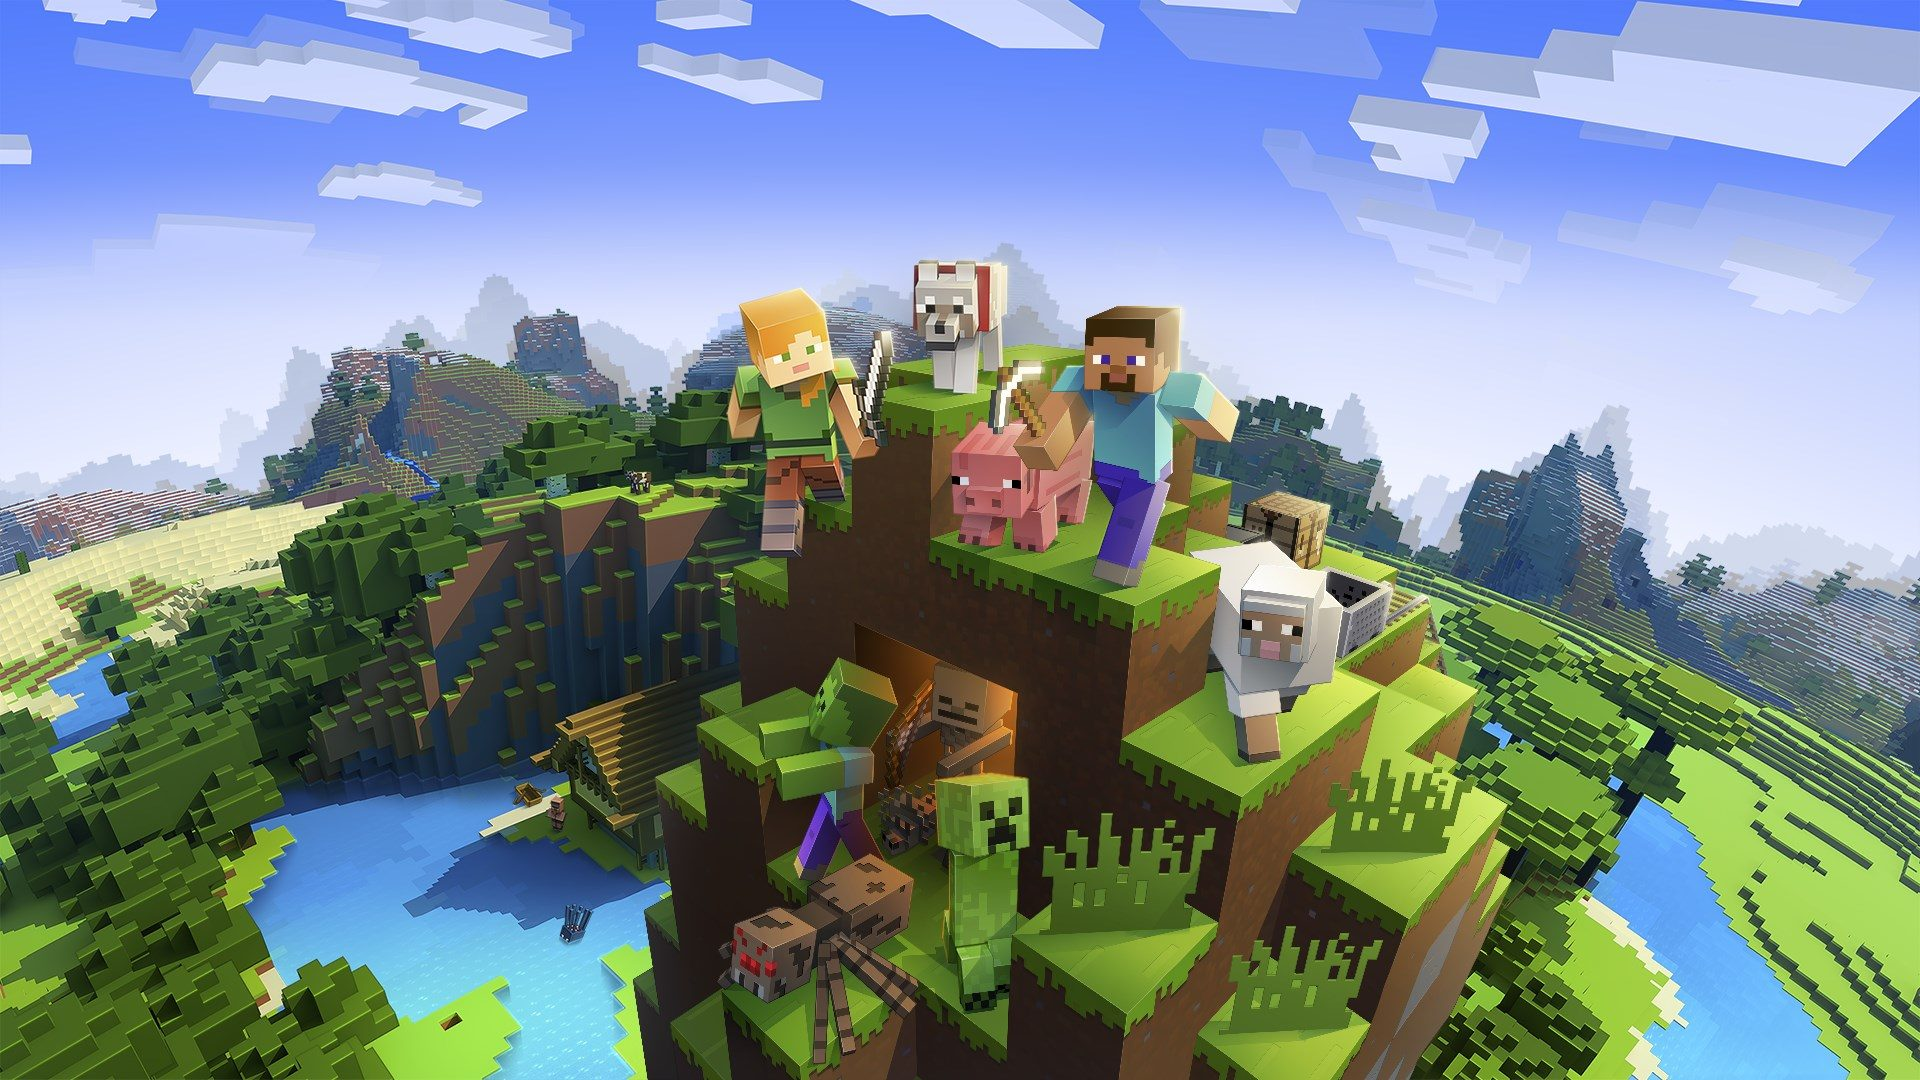 Minecraft adds PS VR support this month – PlayStation.Blog